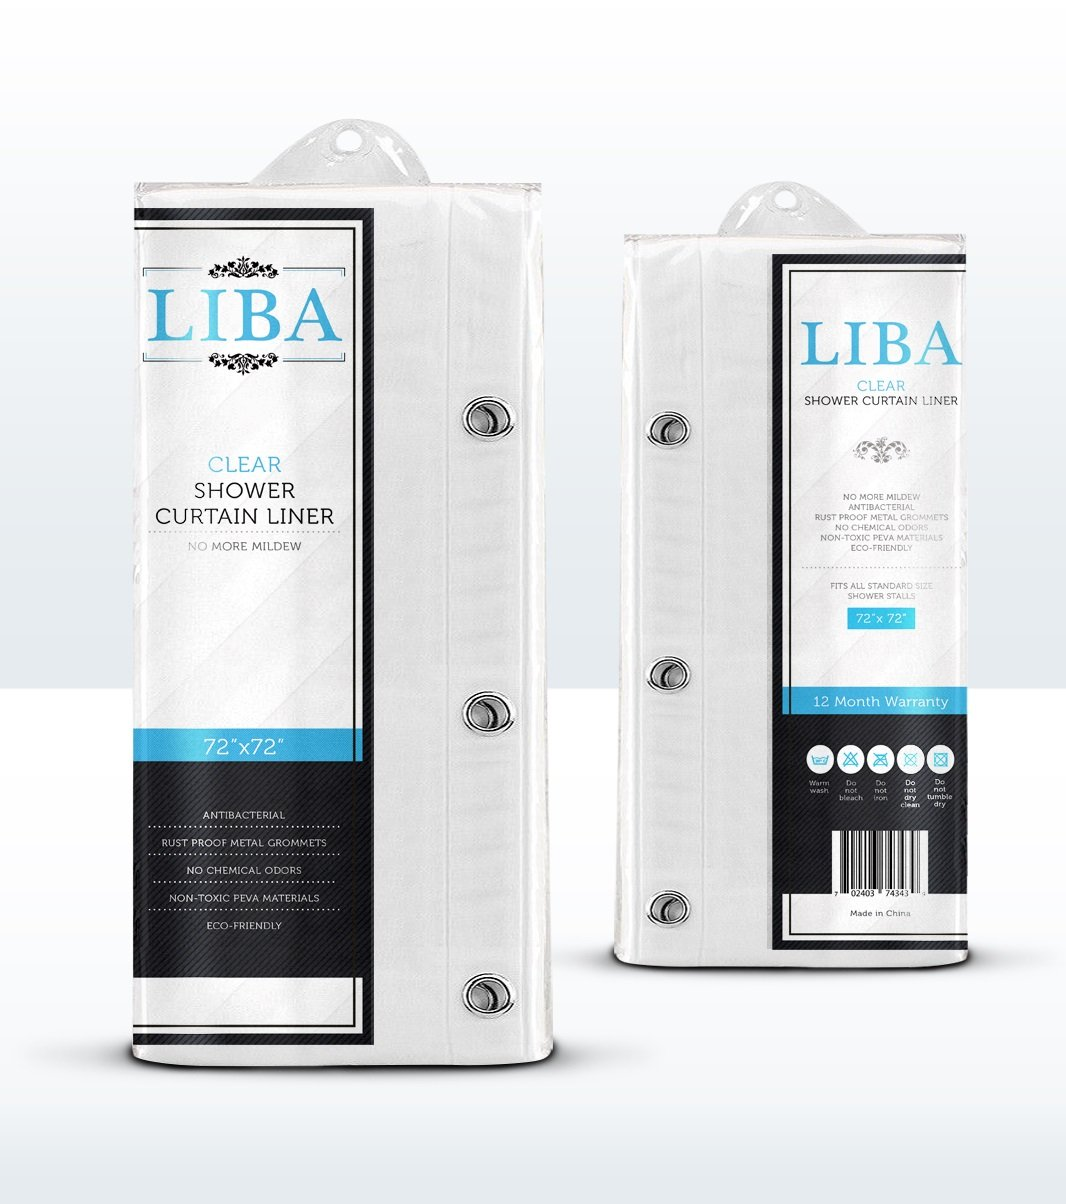 LiBa Mildew Resistant PEVA Shower Curtain Liner, 72x72-Inch, Clear